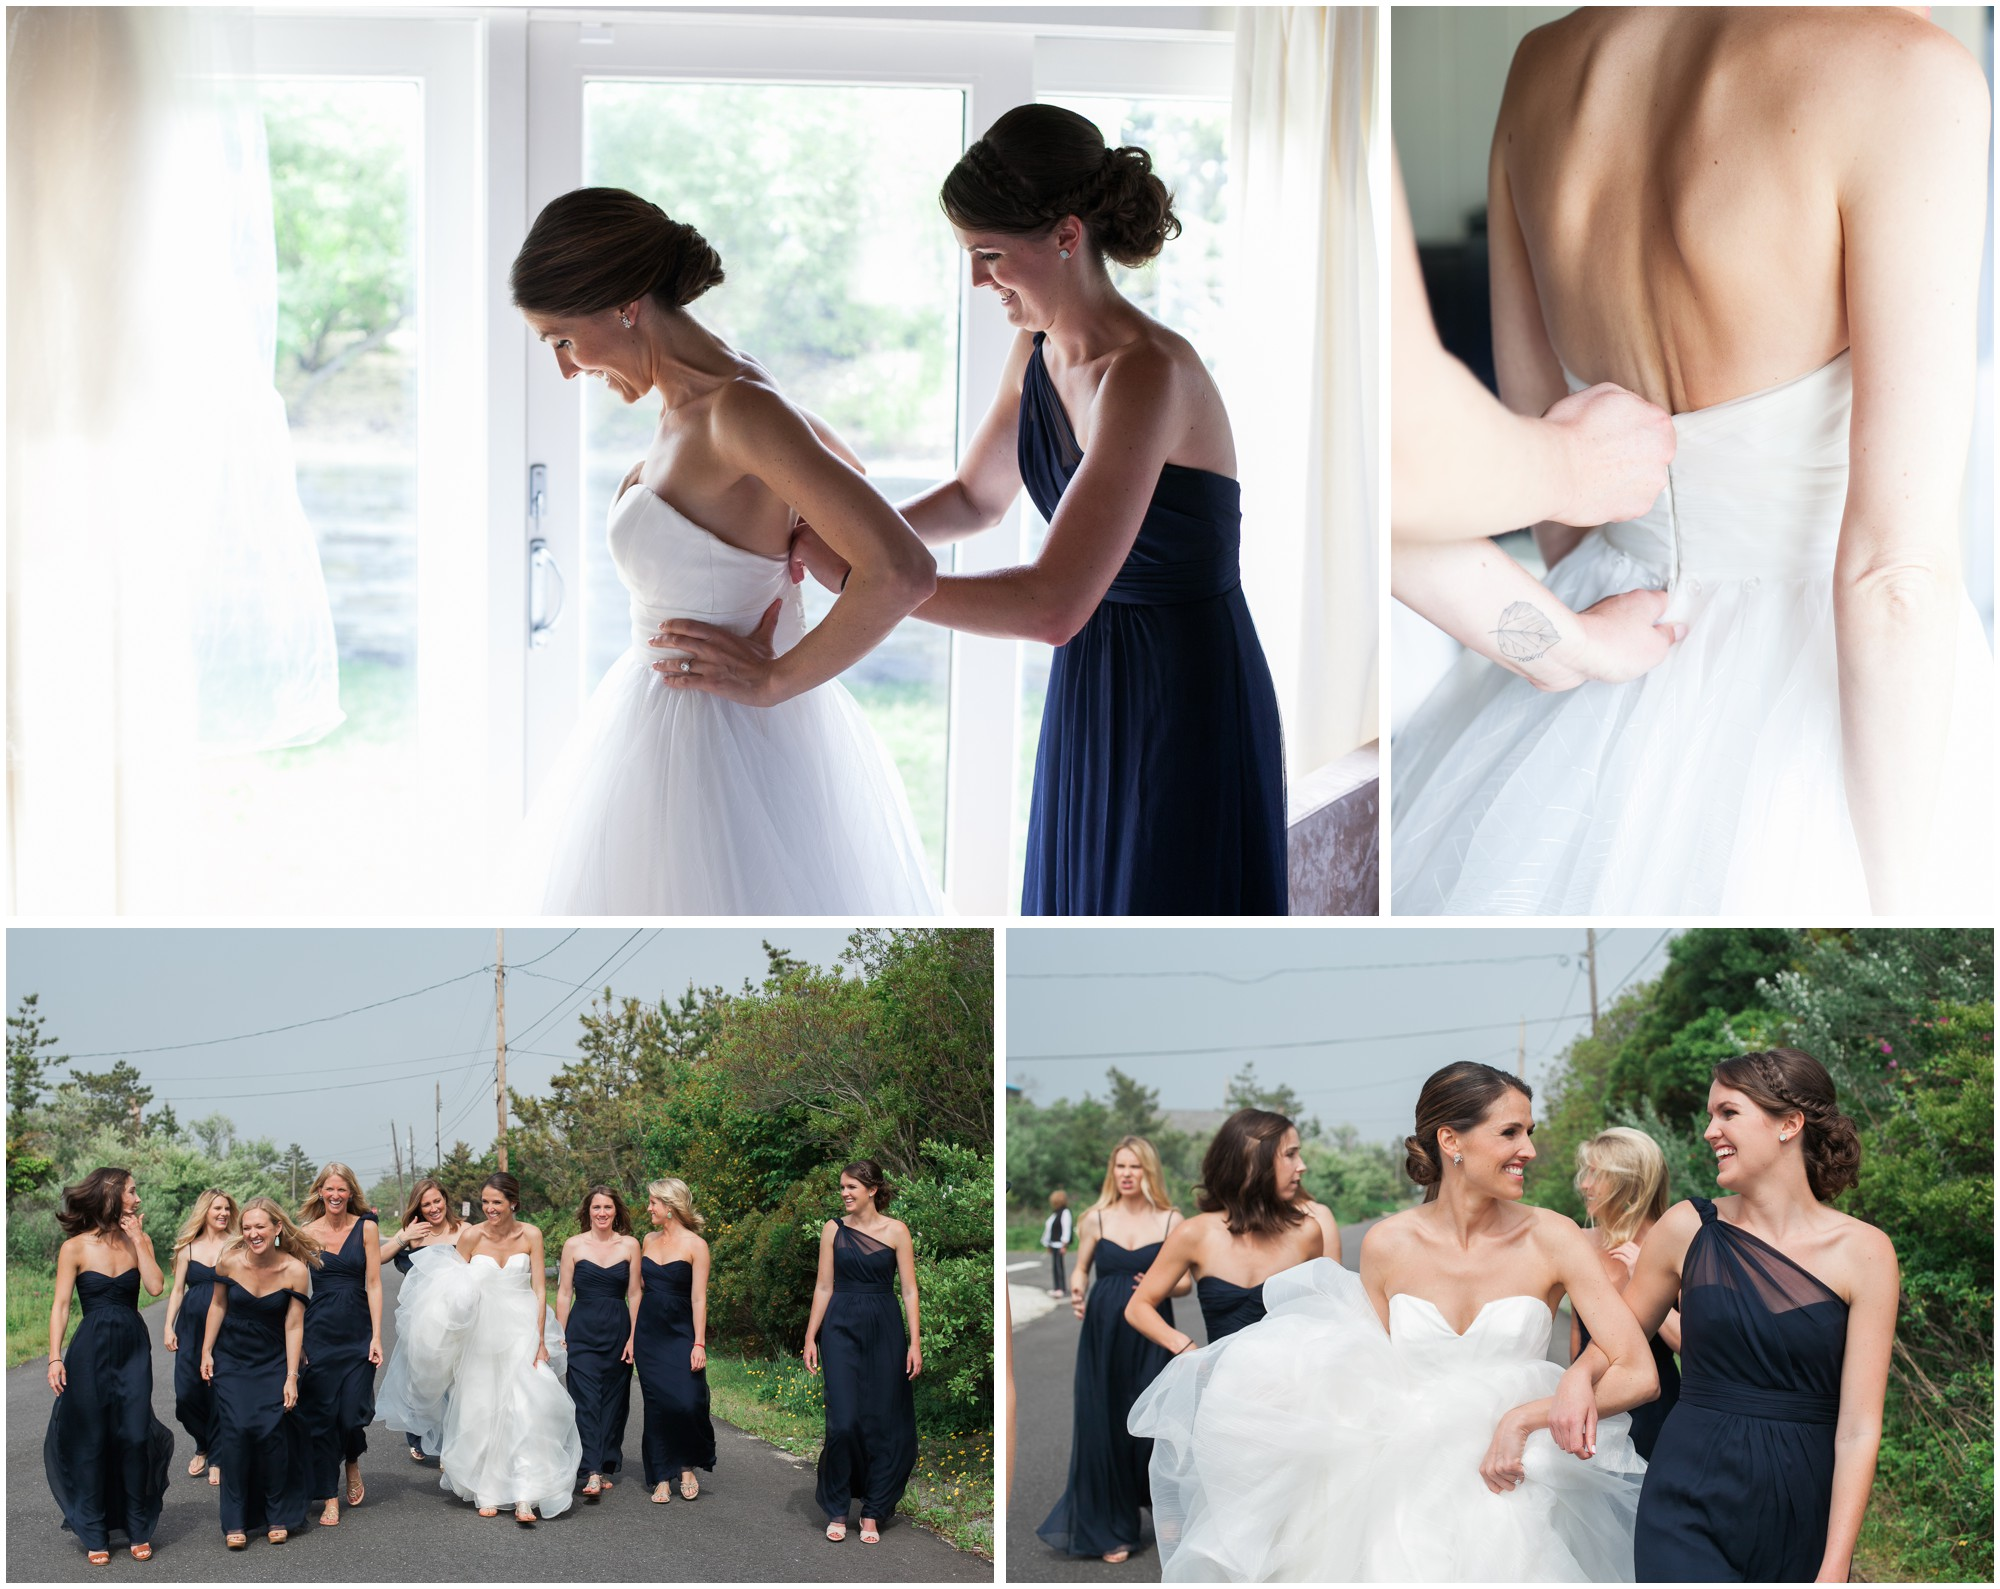 a bride gets ready with her maid of honor and bridesmaids at a private estate in the hamptons